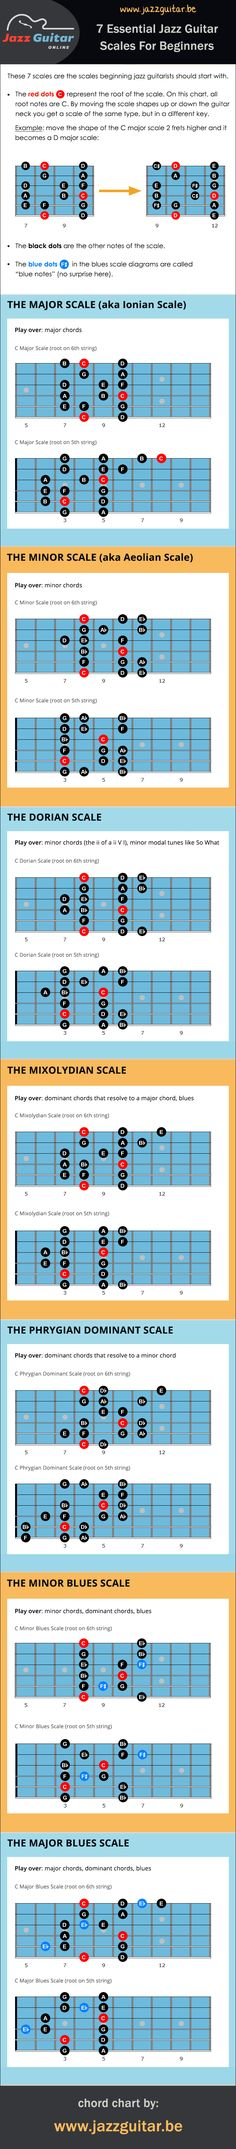 Learning jazz guitar scales can be complicated and often beginners wonder which scales they should learn first. The 7 scales on this chart are a good place to start. These scales are essential for beginning jazz guitarists and enable you to play over almost any jazz standard.